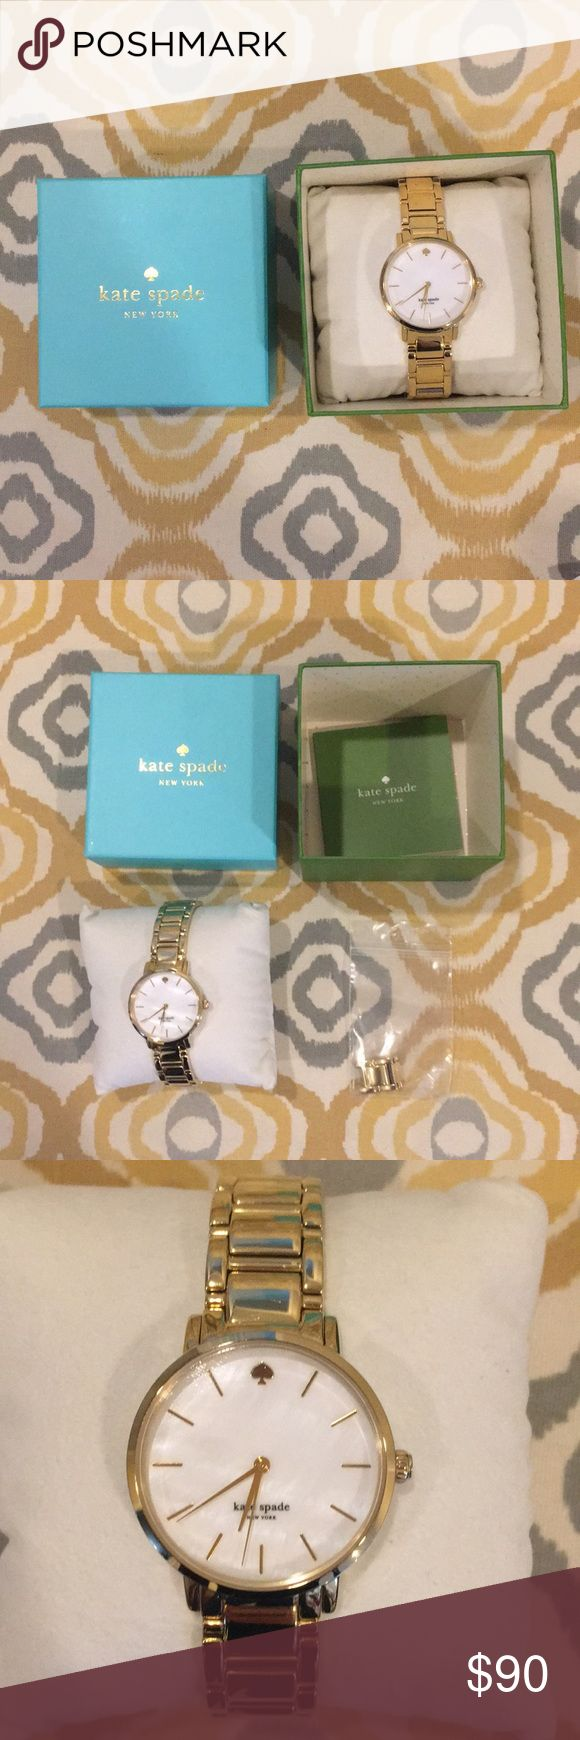 Kate spade gold watch Great condition, NEEDS NEW BATTERY, original packaging! Extra links for re-sizing. kate spade Accessories Watches